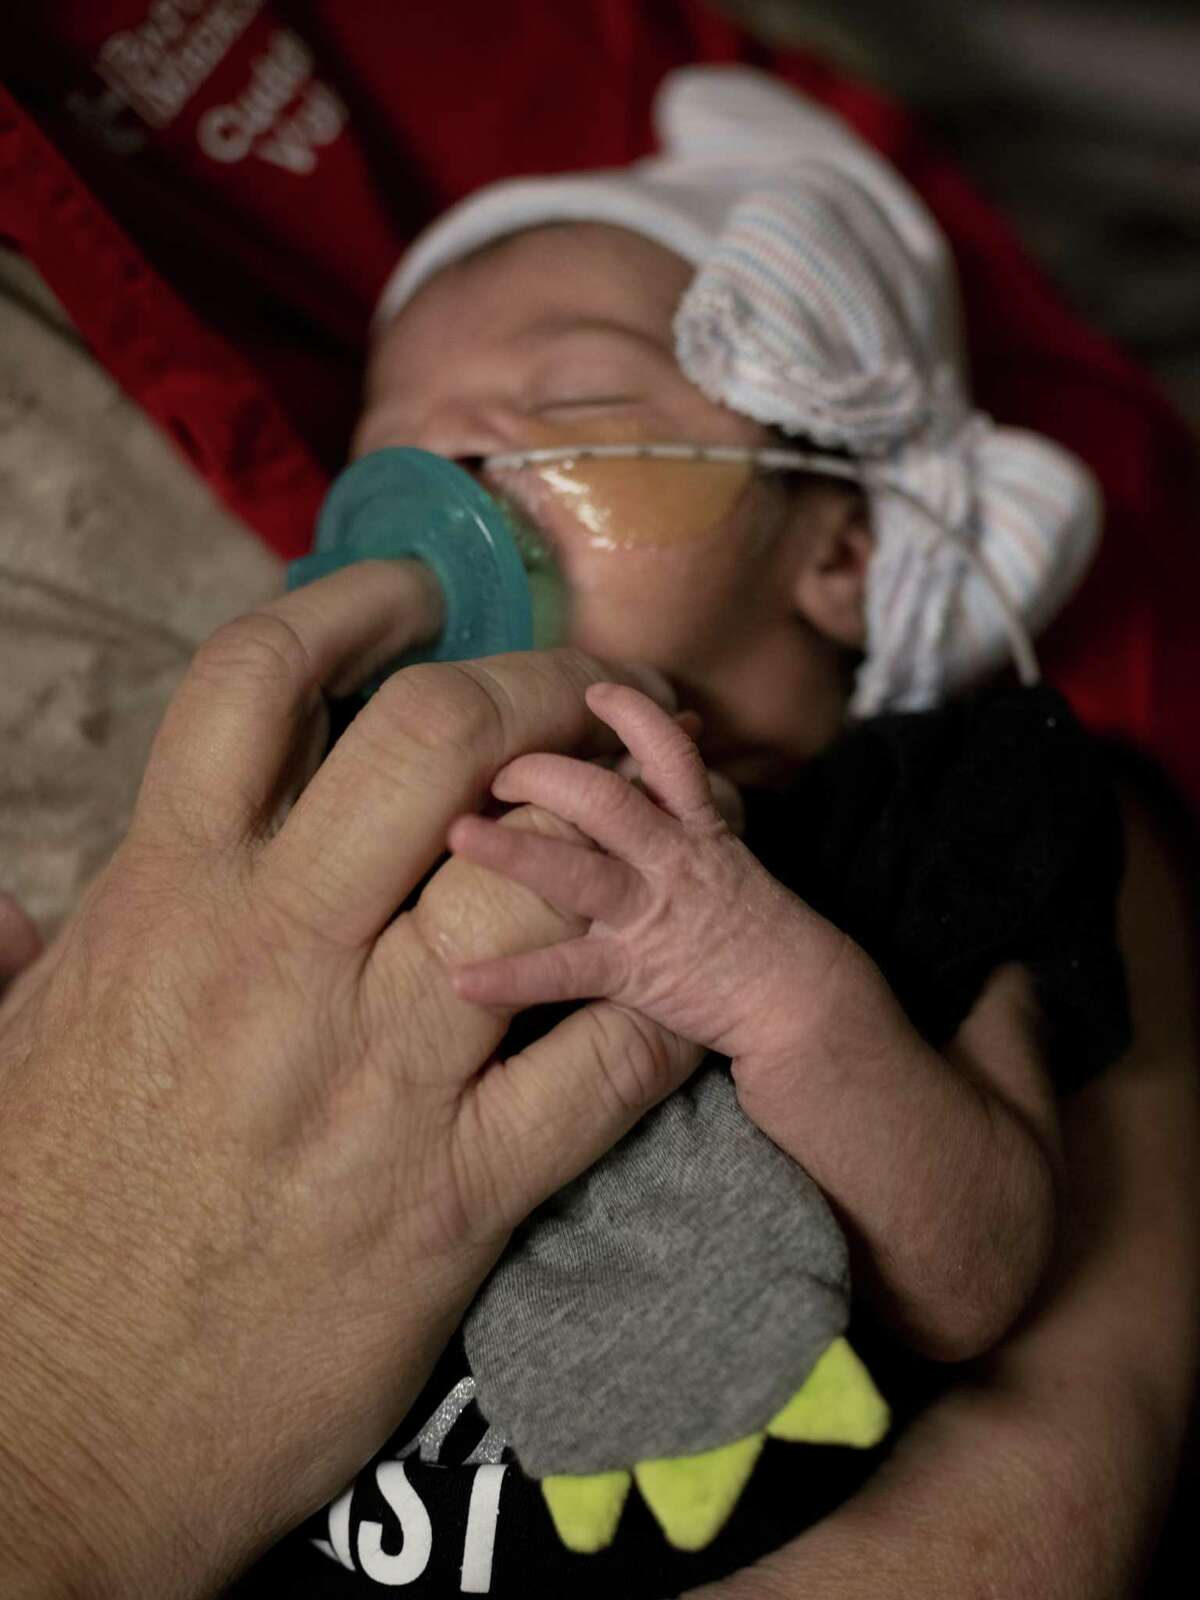 Felicity Cuellar, who was 6 days old, rests peacefully in the arms of Peggy Smith, a volunteer cuddler in the neonatal intensive care unit at Baptist Medical Center on Nov. 13, 2018. The cuddlers are specially trained volunteers who help soothe babies who were born prematurely or are recovering from neonatal abstinence syndrome.